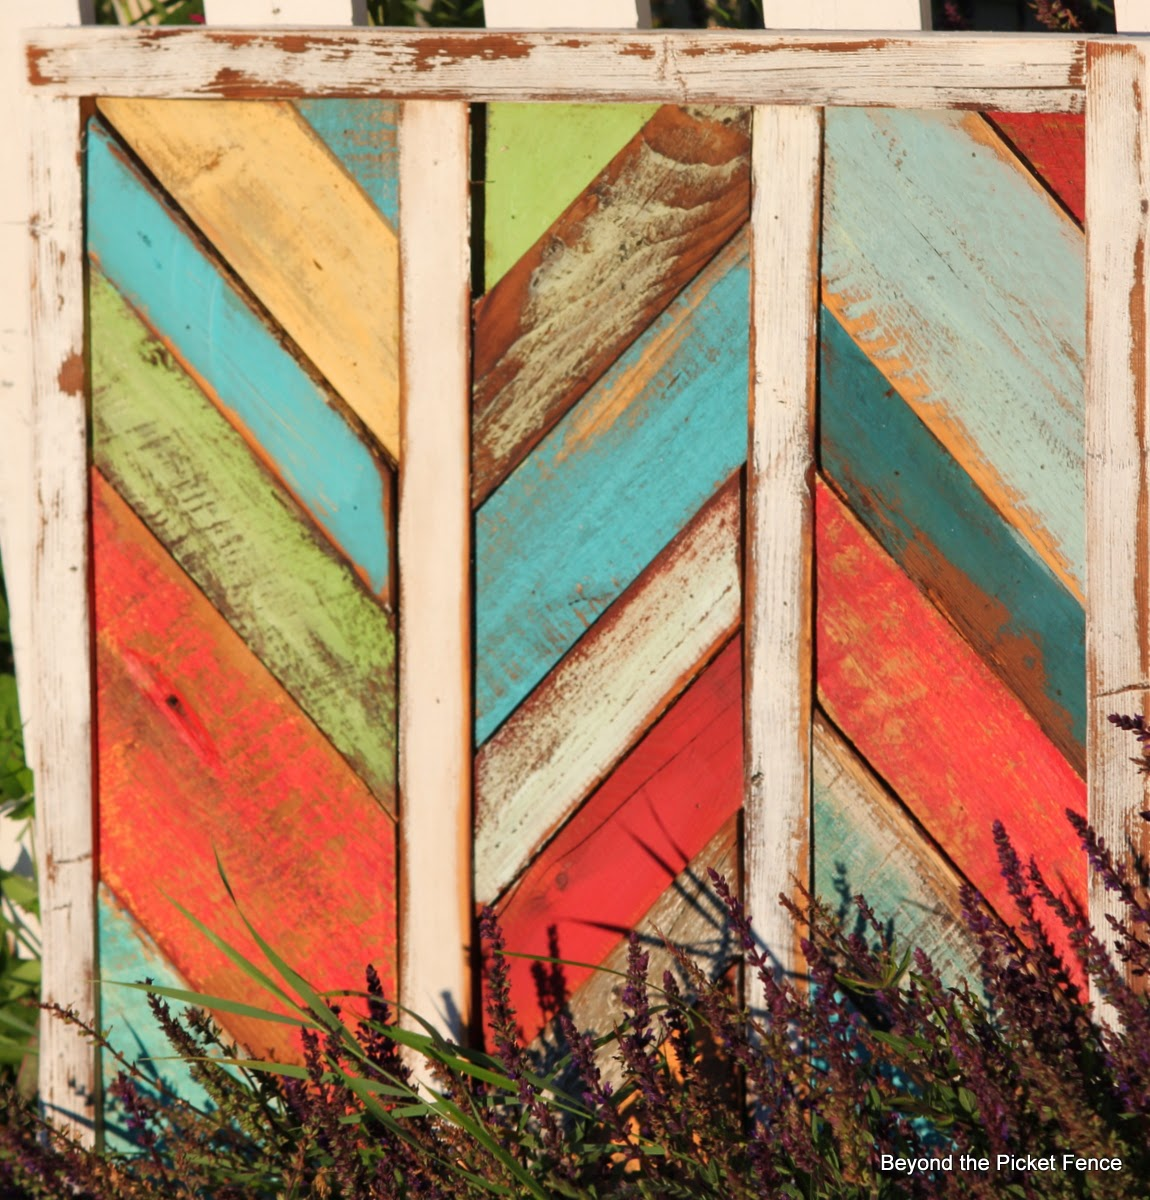 reclaimed wood art http://bec4-beyondthepicketfence.blogspot.com/2014/07/reclaimed-herringbone-art-and-tale-of.html